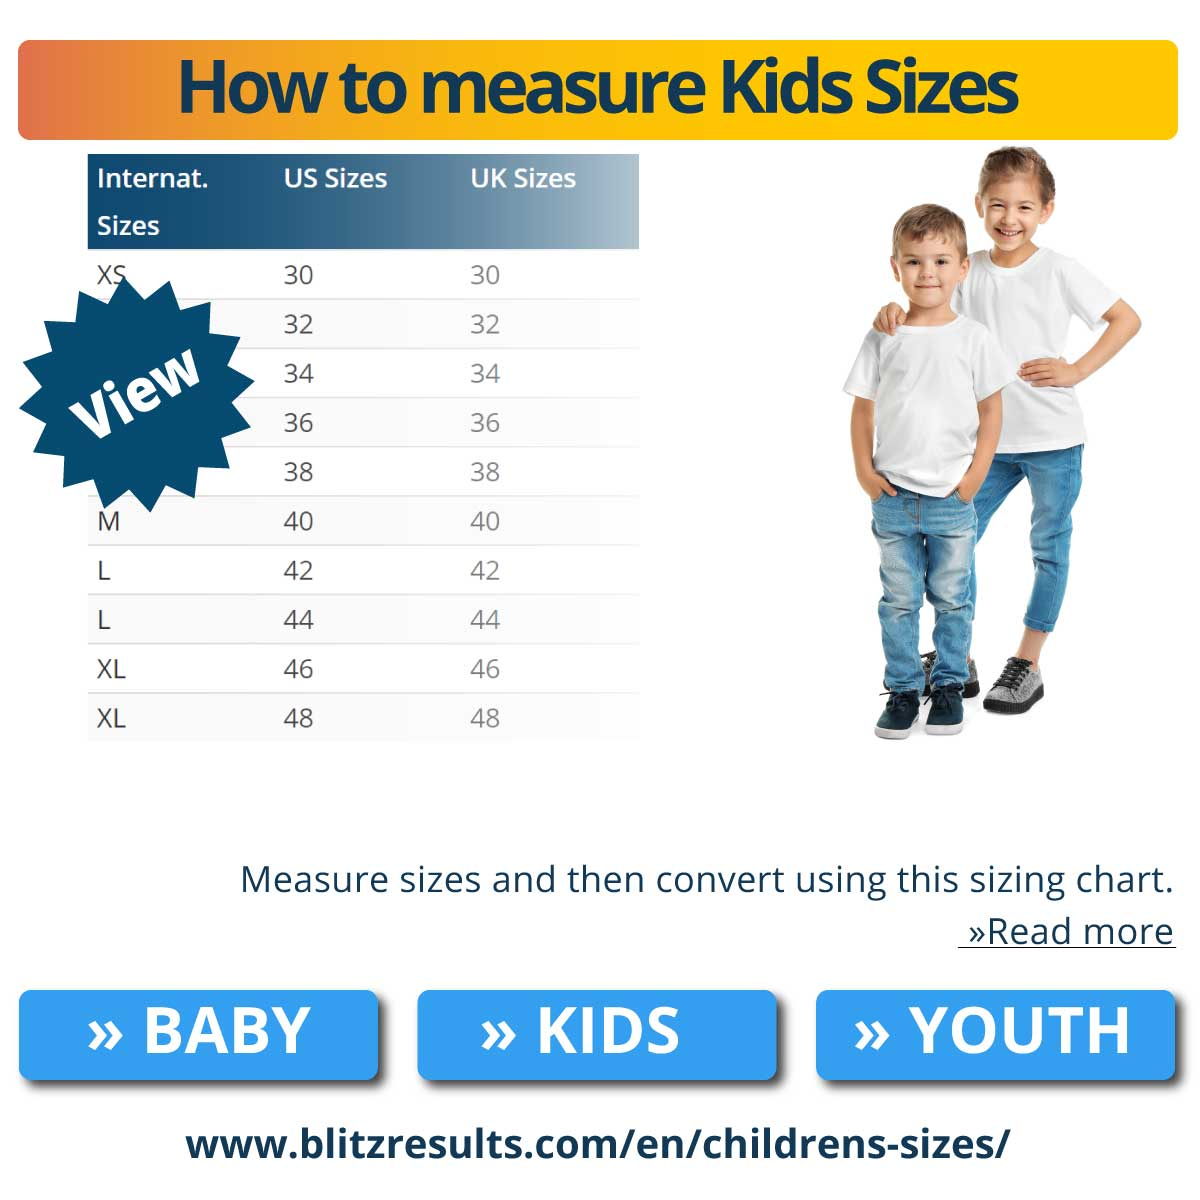 How to measure Kids Sizes